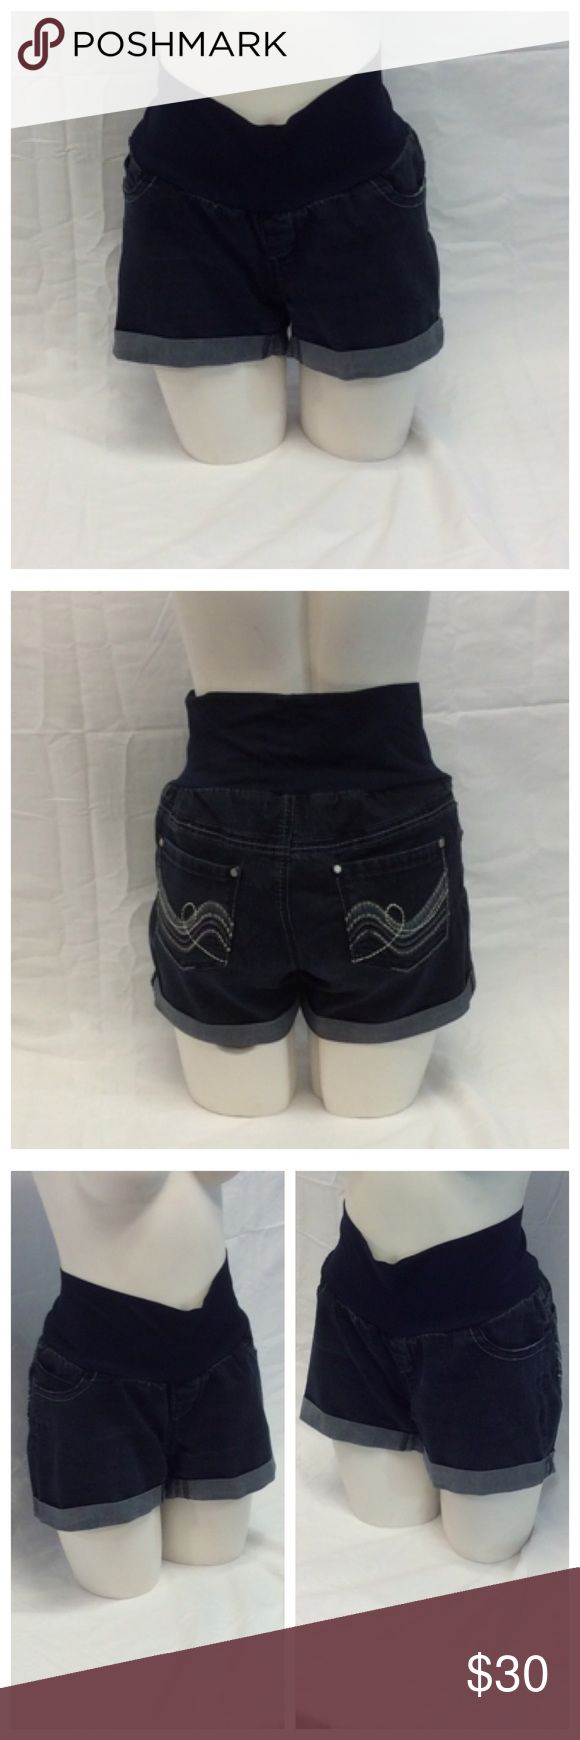 """INDIGO REIN Ladies Maternity Jean Shorts INDIGO REIN Ladies Maternity Jean Shorts w/Embroidered back pockets, Size M, 58% cotton, 25% polyester, 16% rayon, 1% spandex; belly 86% nylon, 14% spandex, machine wash. Approximate measurements are 14"""" waist laying flat, 13 1/2"""" waist to hem, 8 1/2"""" waist to crotch, 1"""" cuffs. 0452 Indigo Rein Shorts Jean Shorts"""